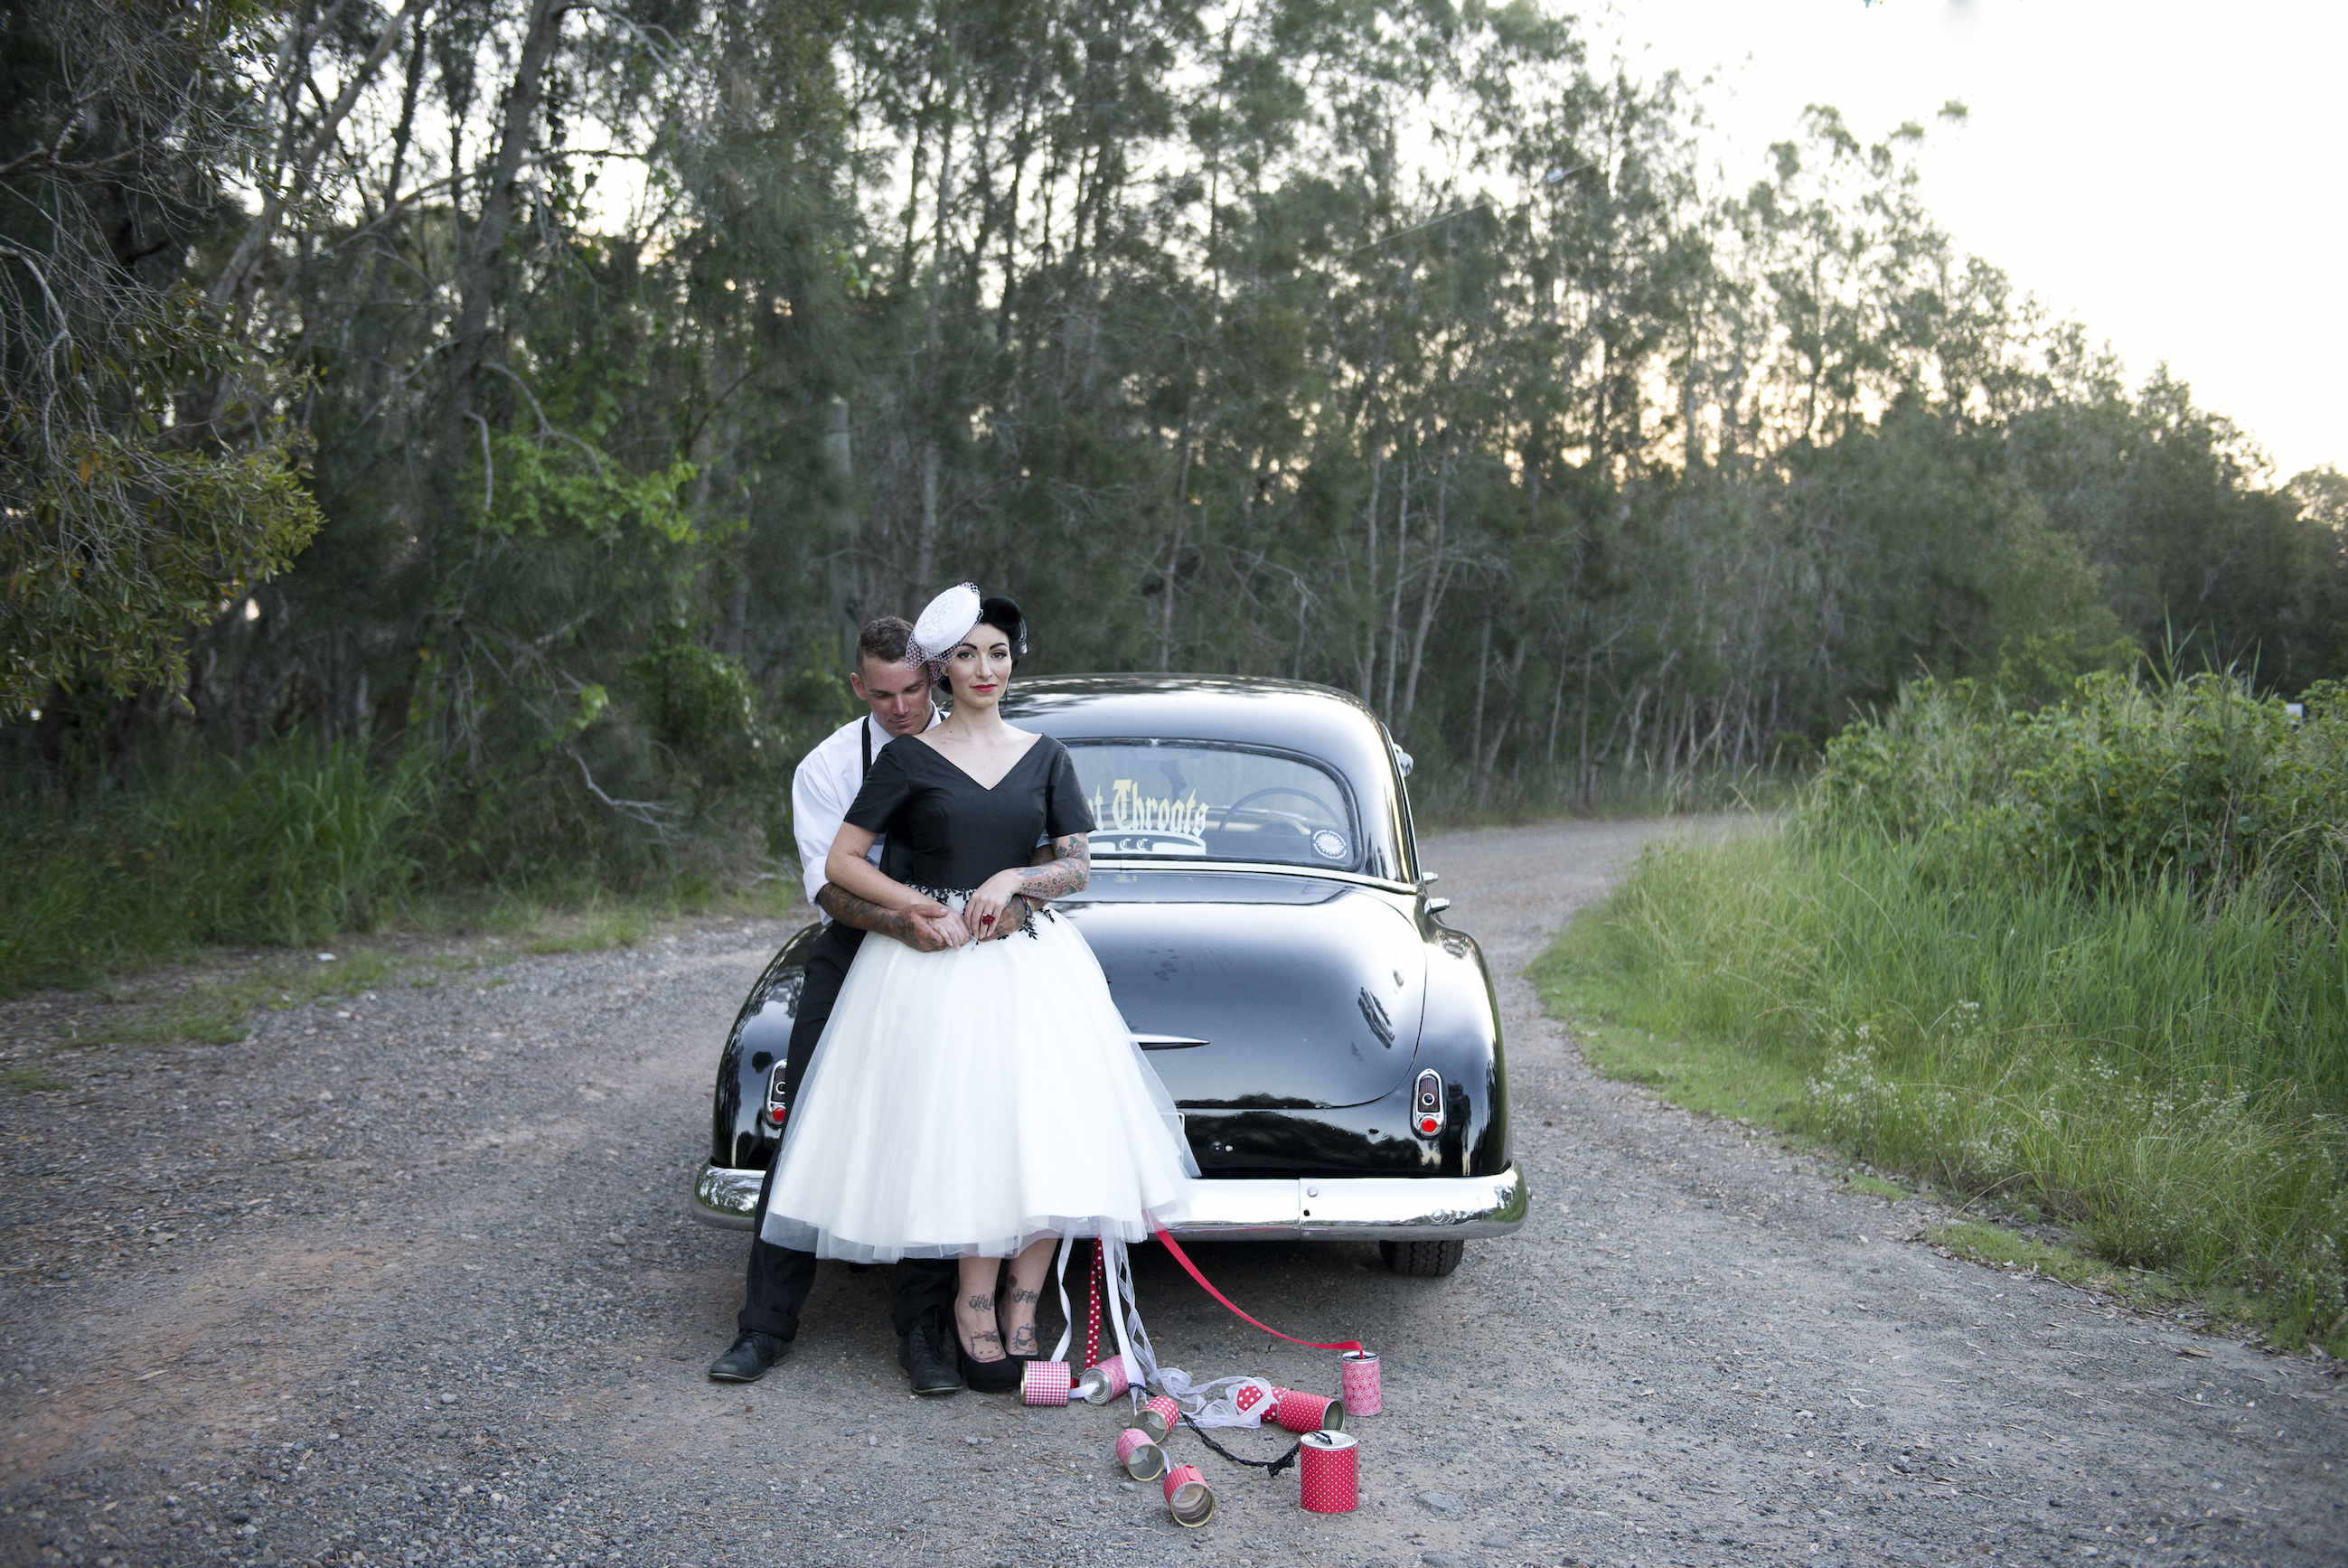 Vintage fashion inspired Bride and Groom